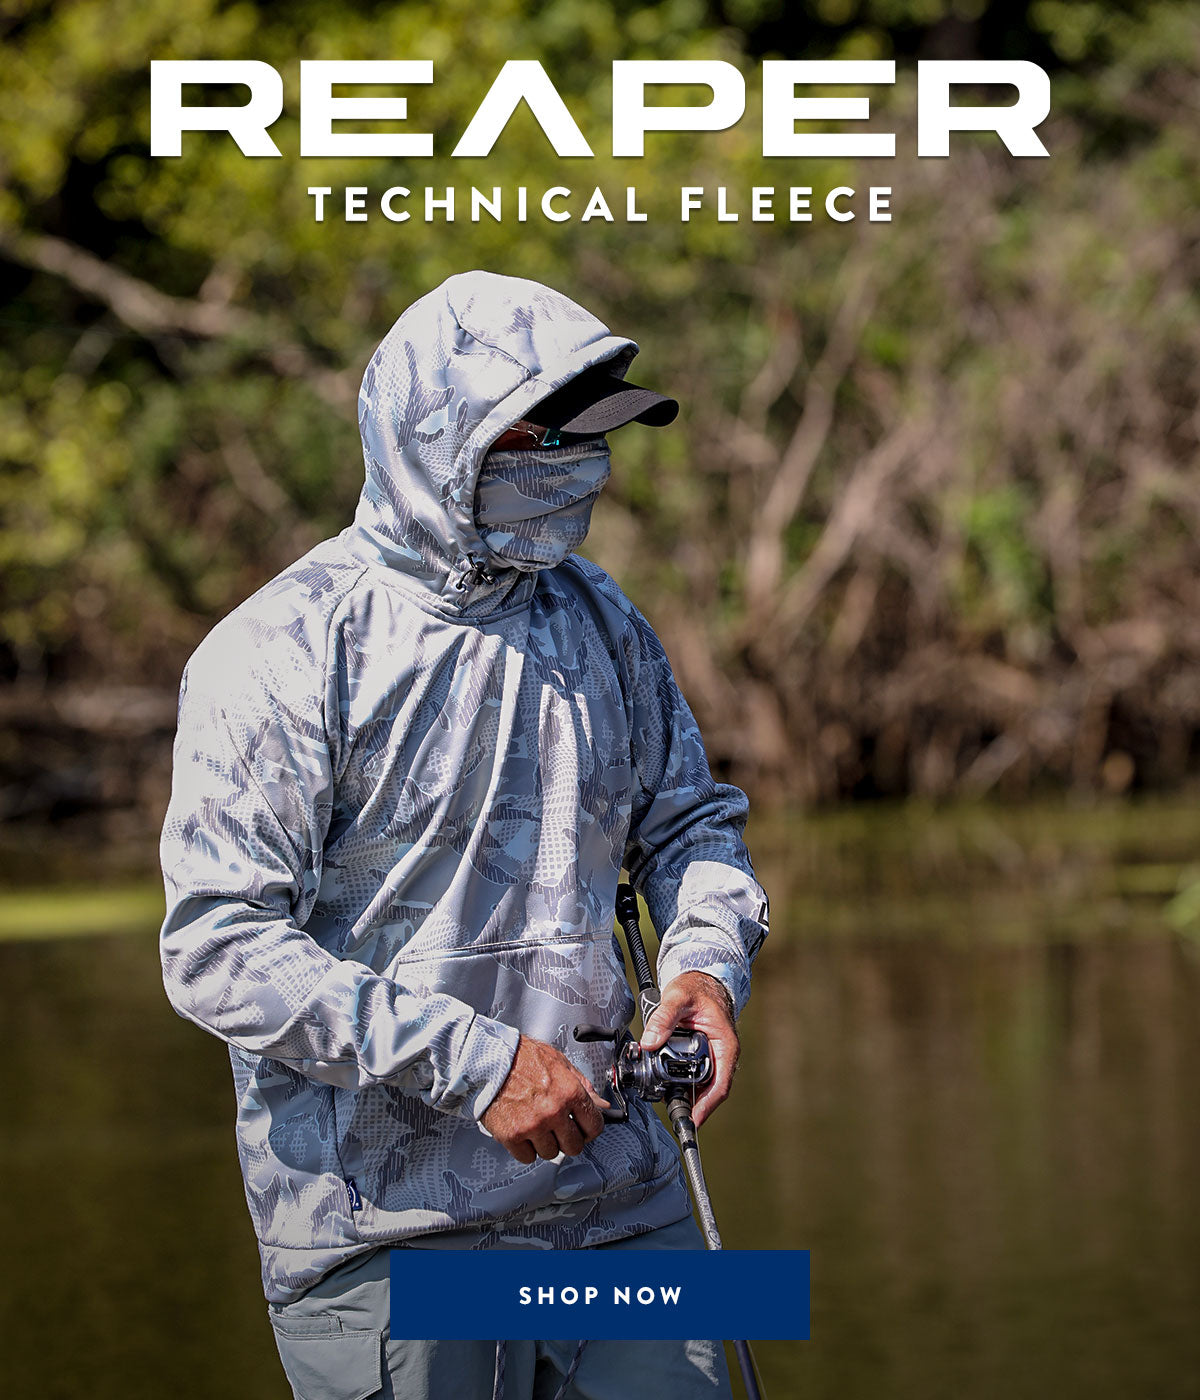 Reaper Technical Fleece - Shop Now